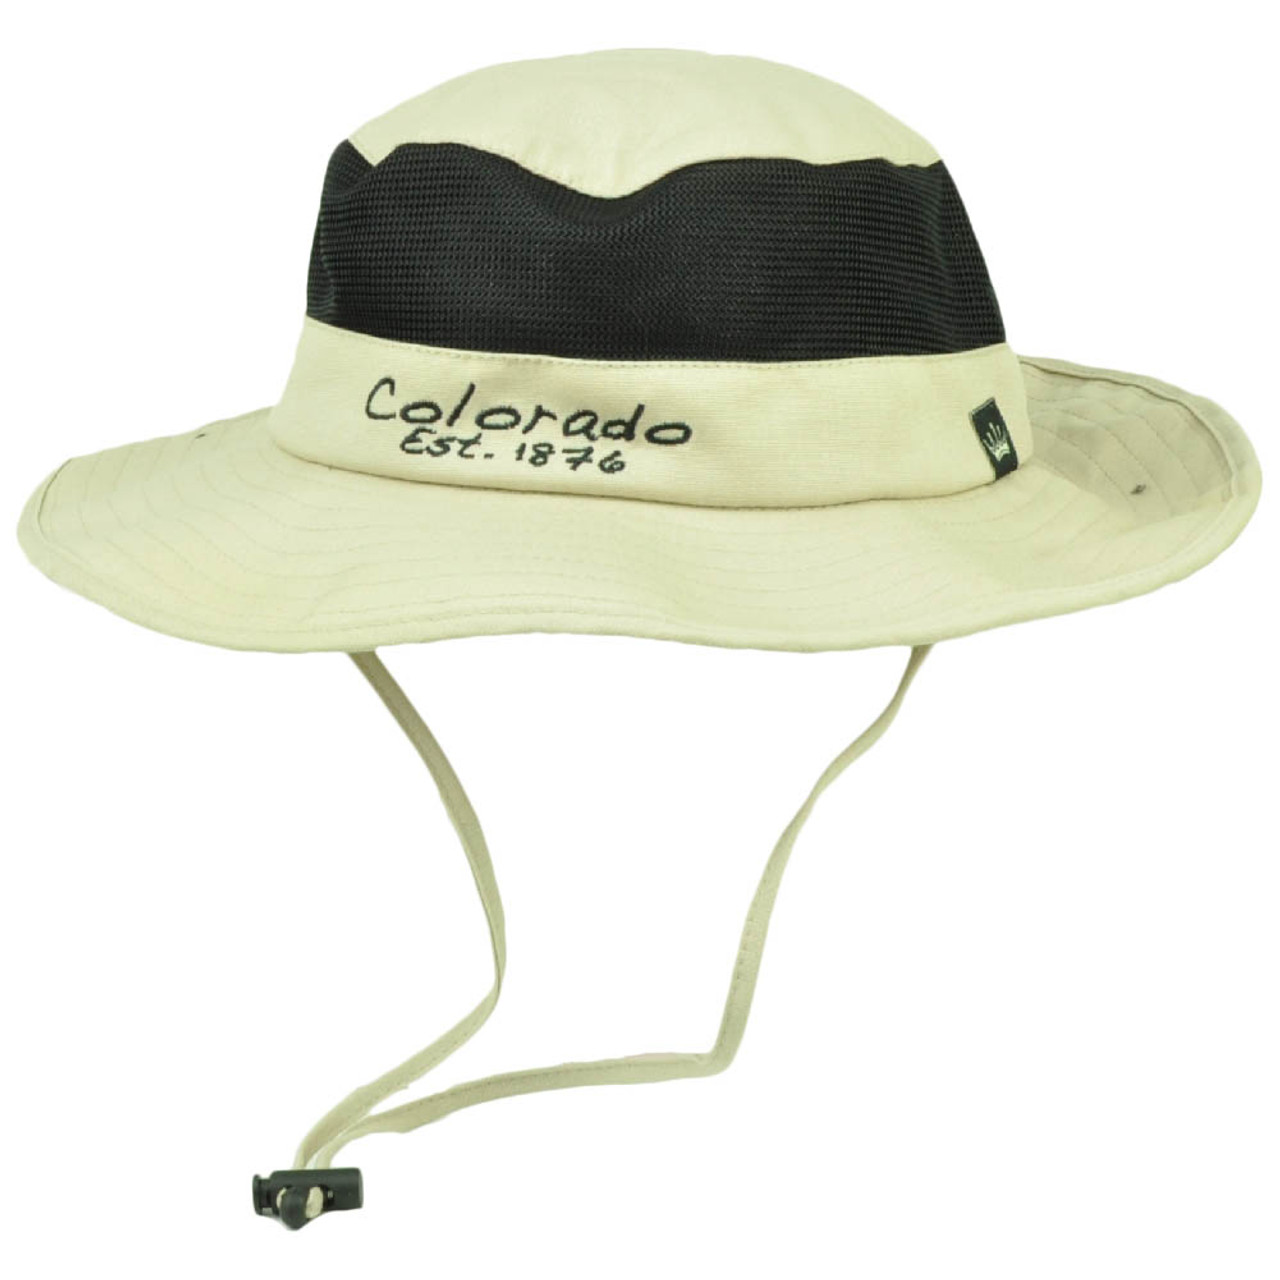 616f2bf3d7daa3 Colorado State Beige Booney Sun bucket Hat Chin Strap Mesh Band Outdoors USA  - Cap Store Online.com